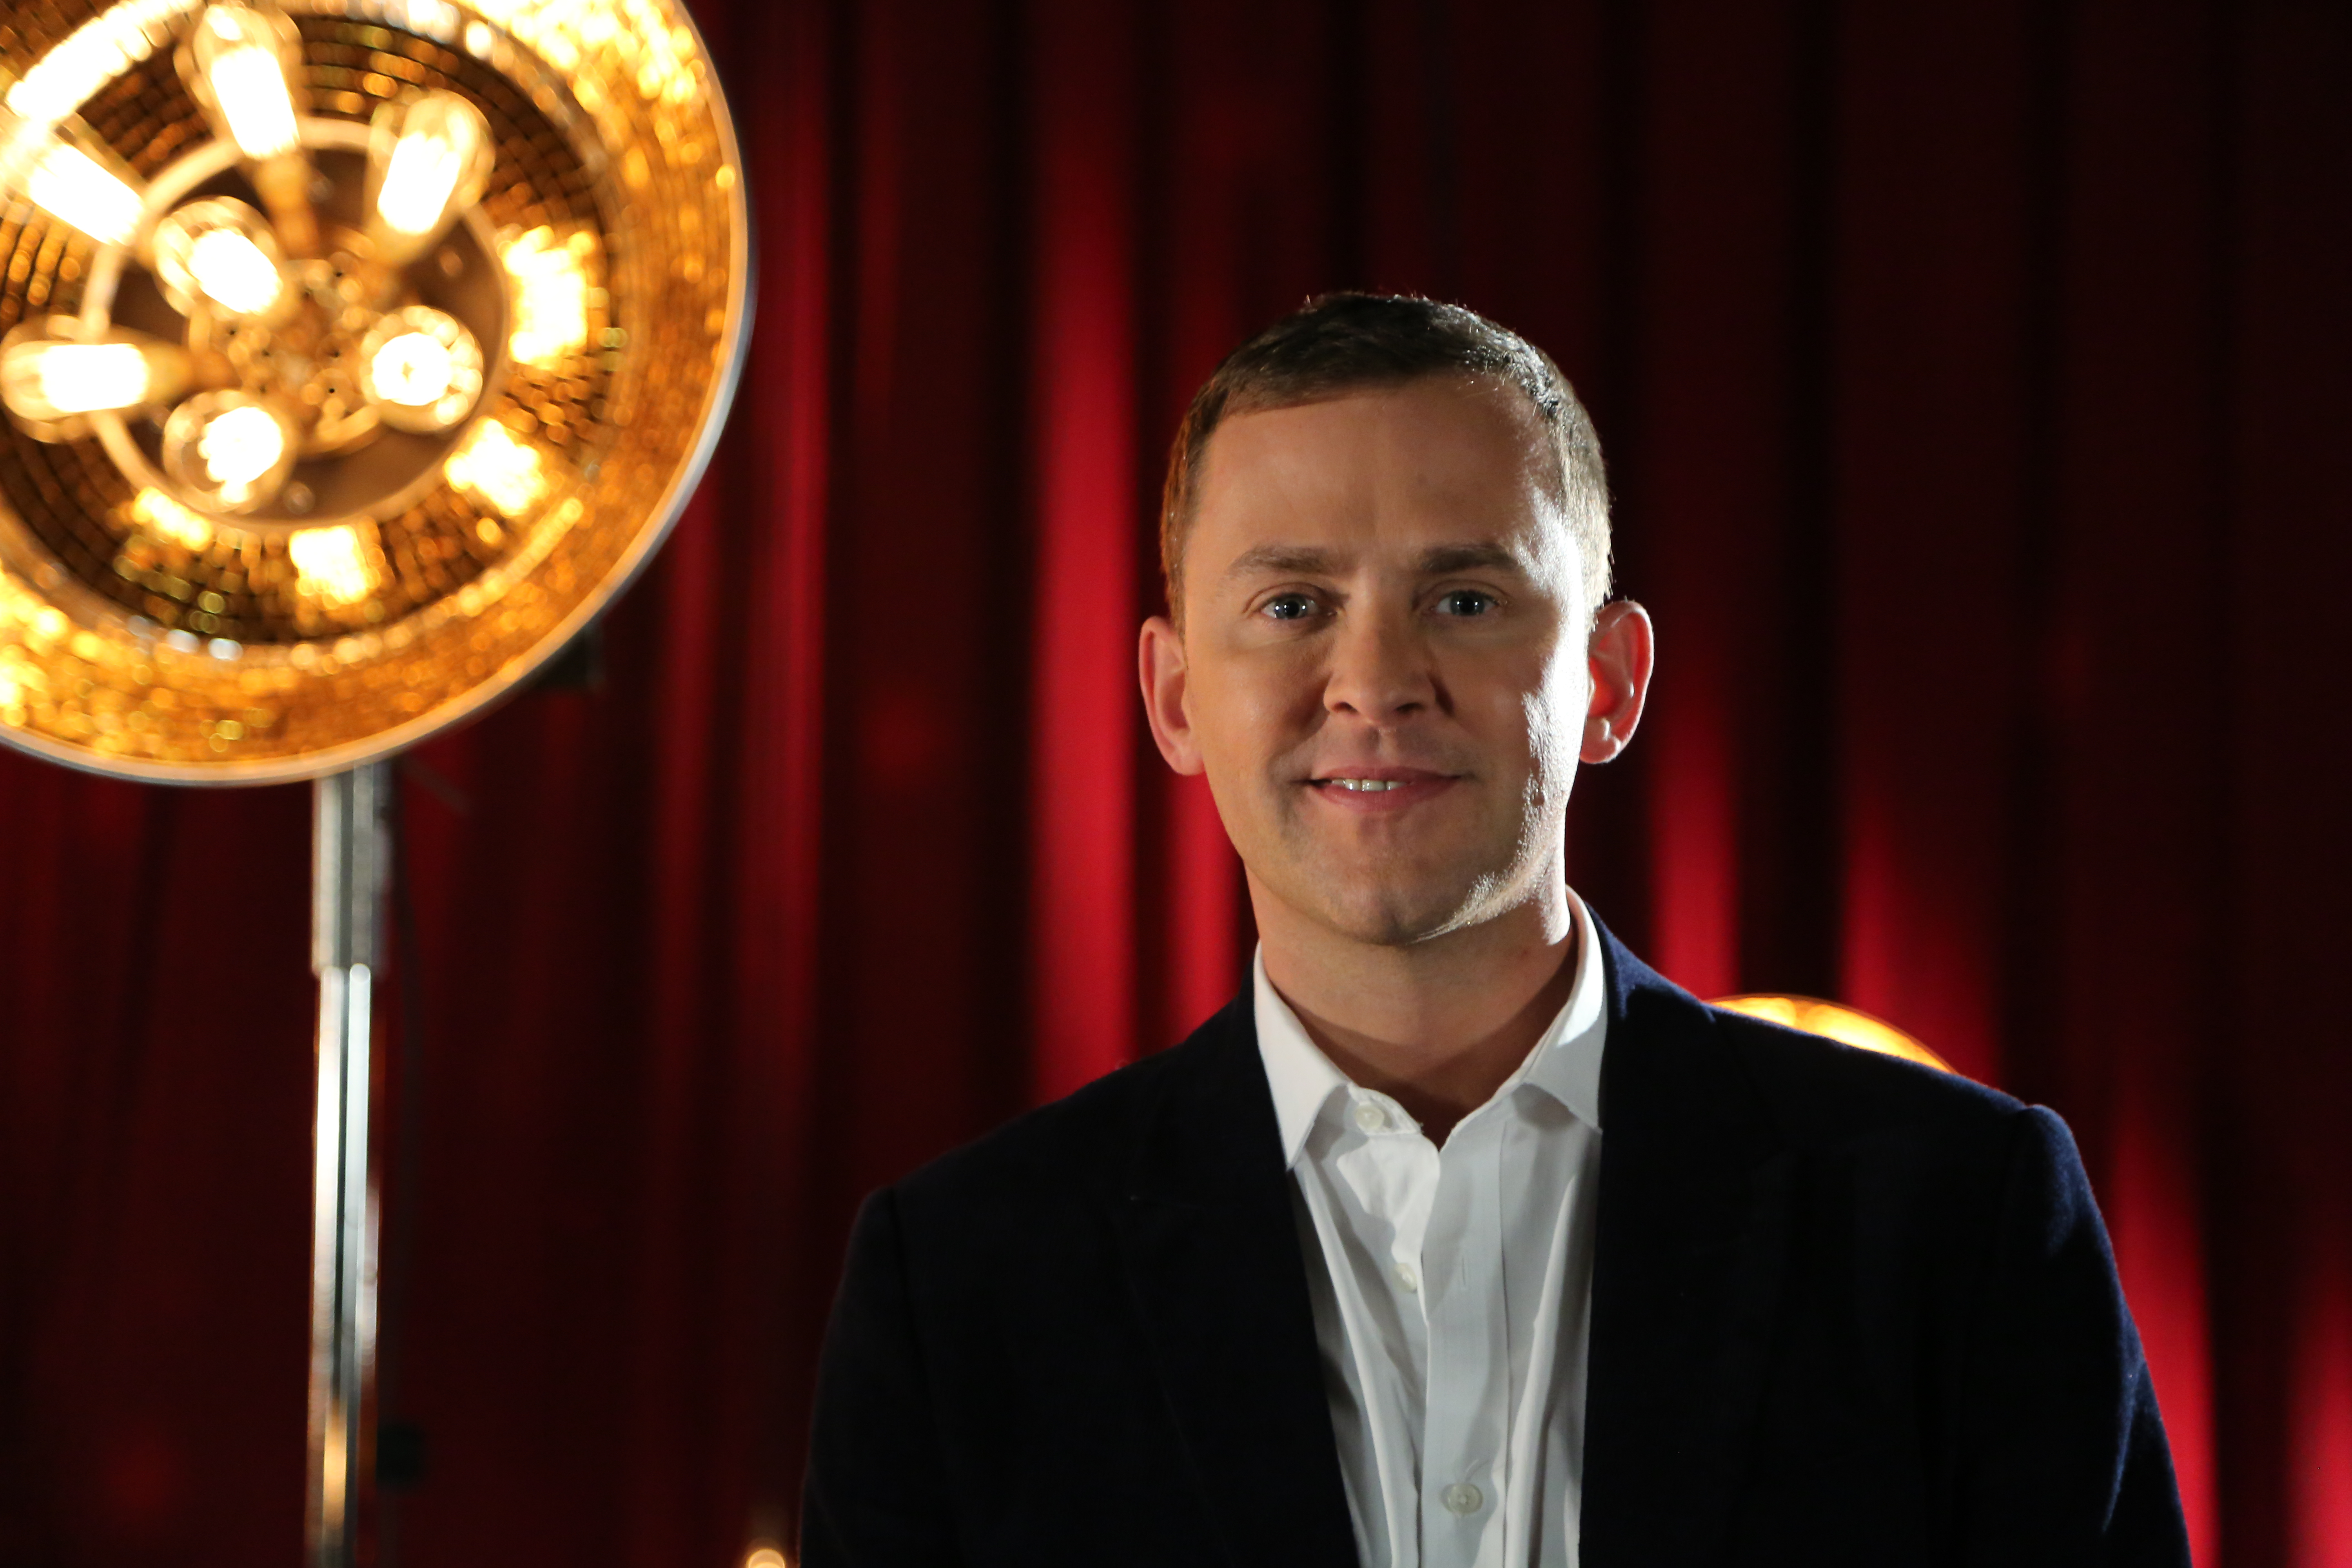 Radio 1 DJ Scott Mills announces he's signed up for Strictly Come Dancing 2014